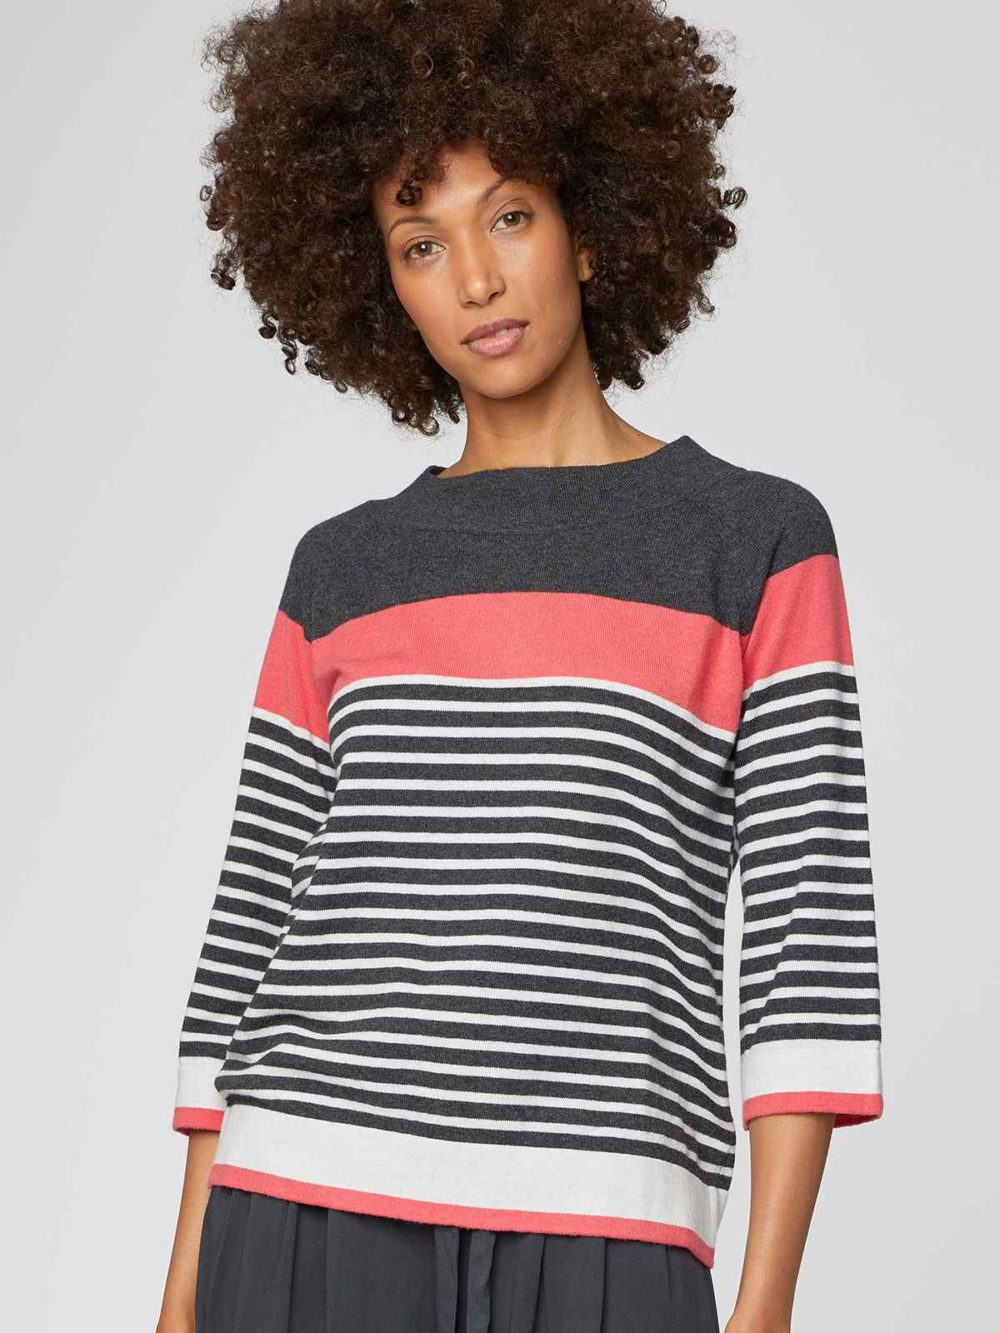 Sail La Vie Jumper Thought Clothing Katie Kerr Women's Clothing